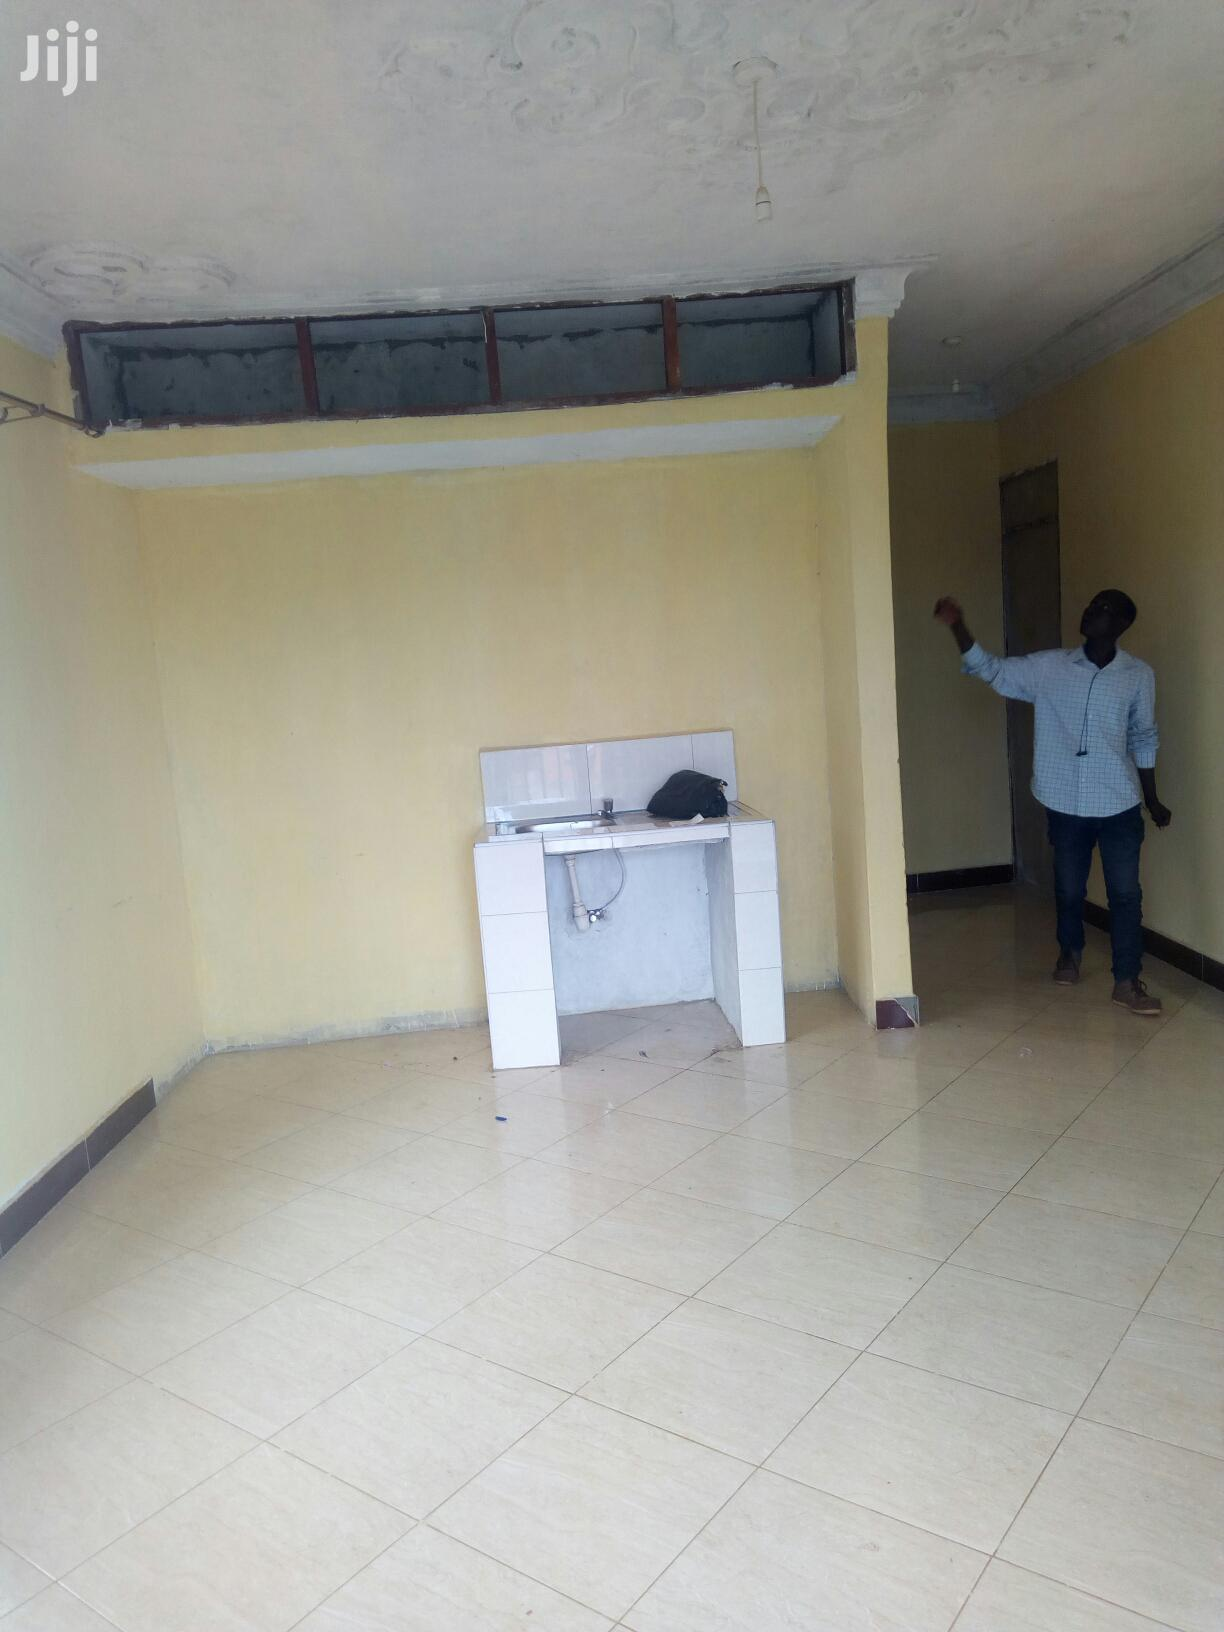 Spacious New Single Room for Rent in Bweyogerere Center. | Houses & Apartments For Rent for sale in Kampala, Central Region, Uganda